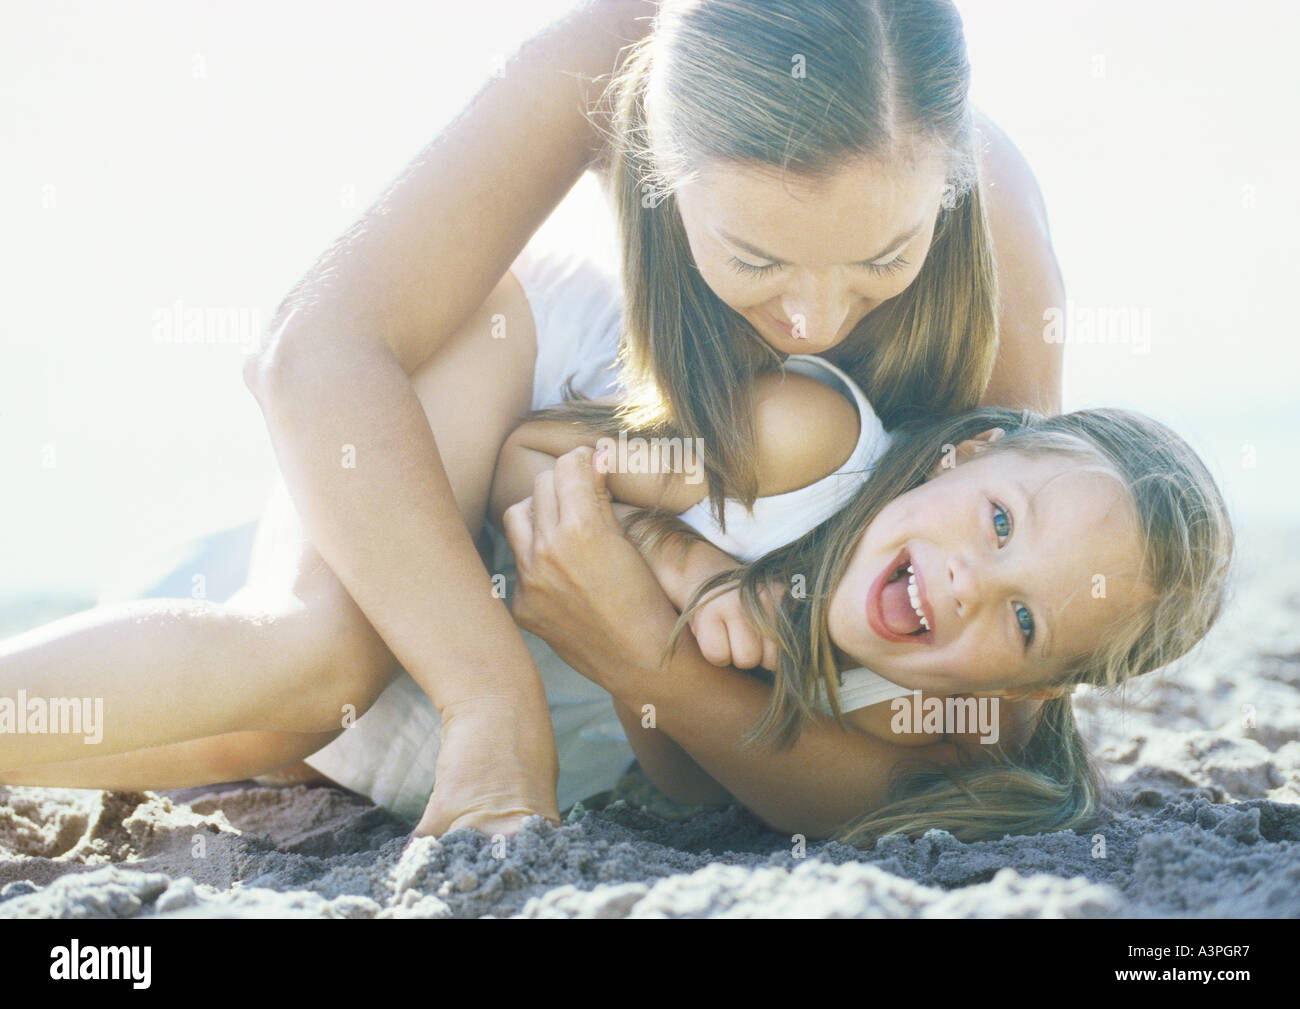 Woman holding daughter on sand, laughing - Stock Image